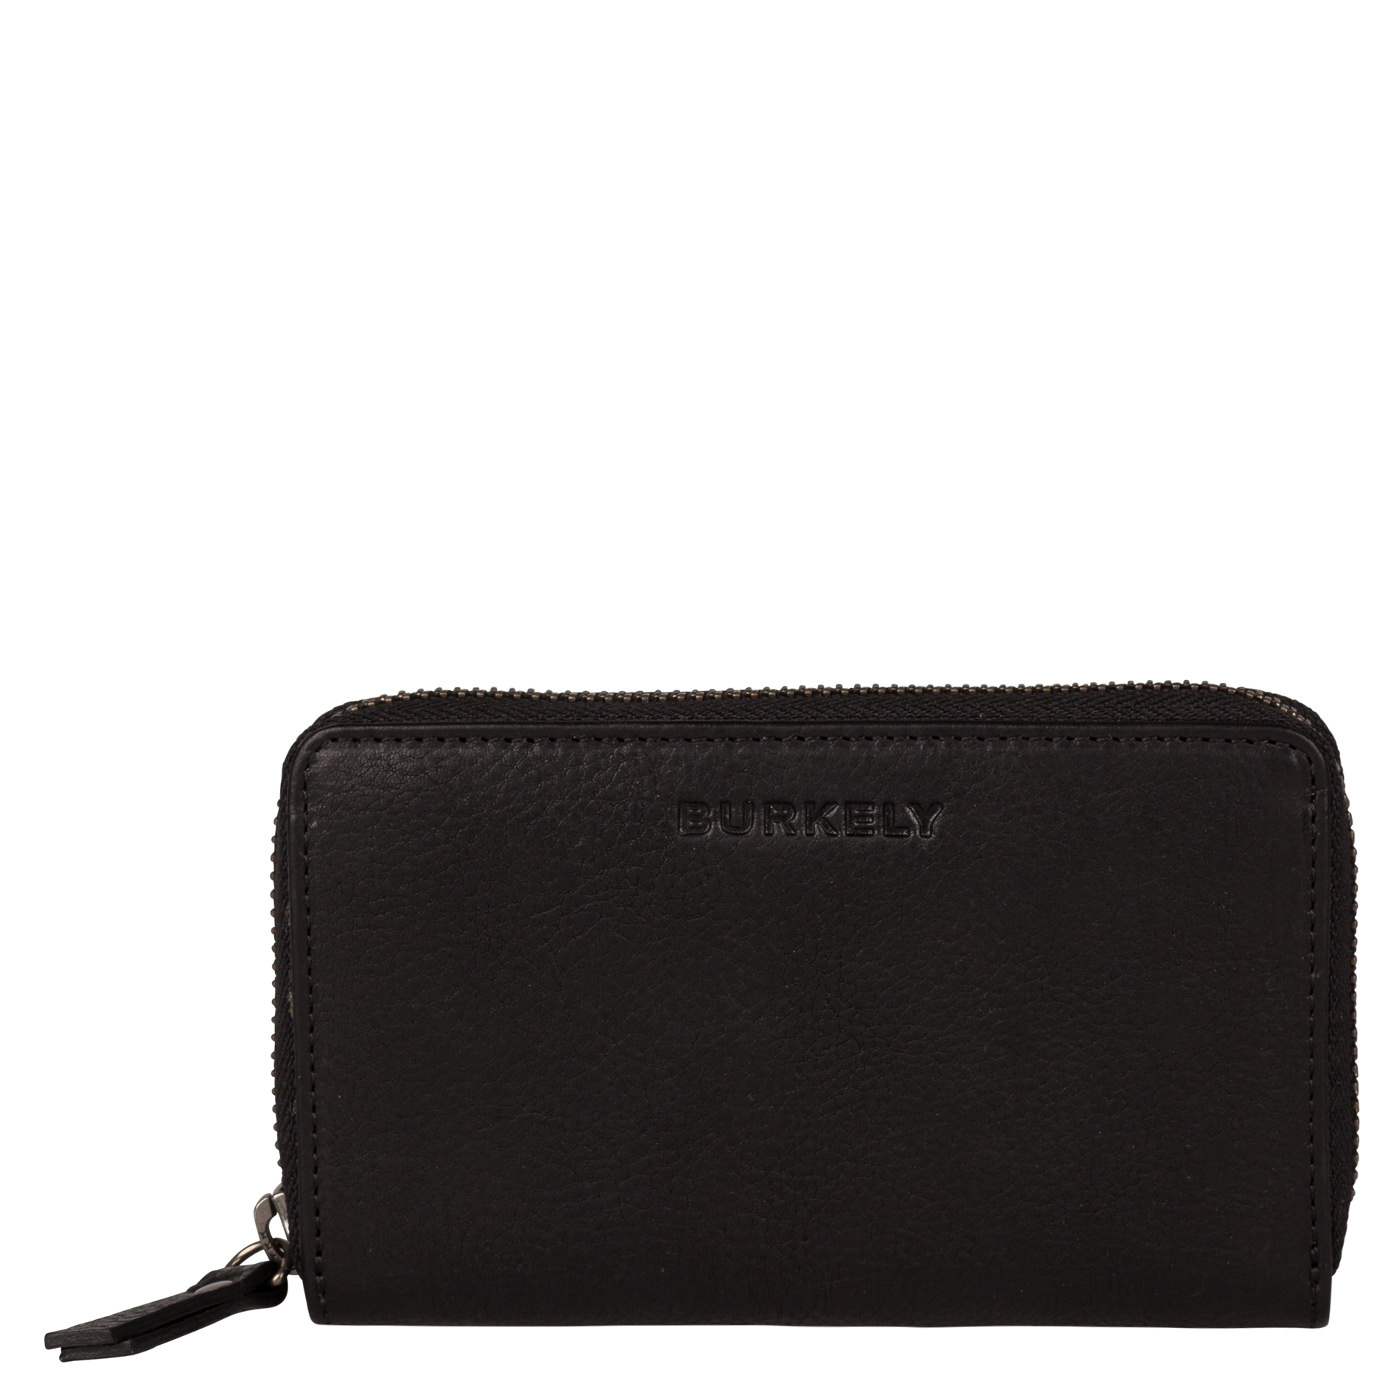 Bilde av Burkely Antique Avery Black Wallet 880756.10